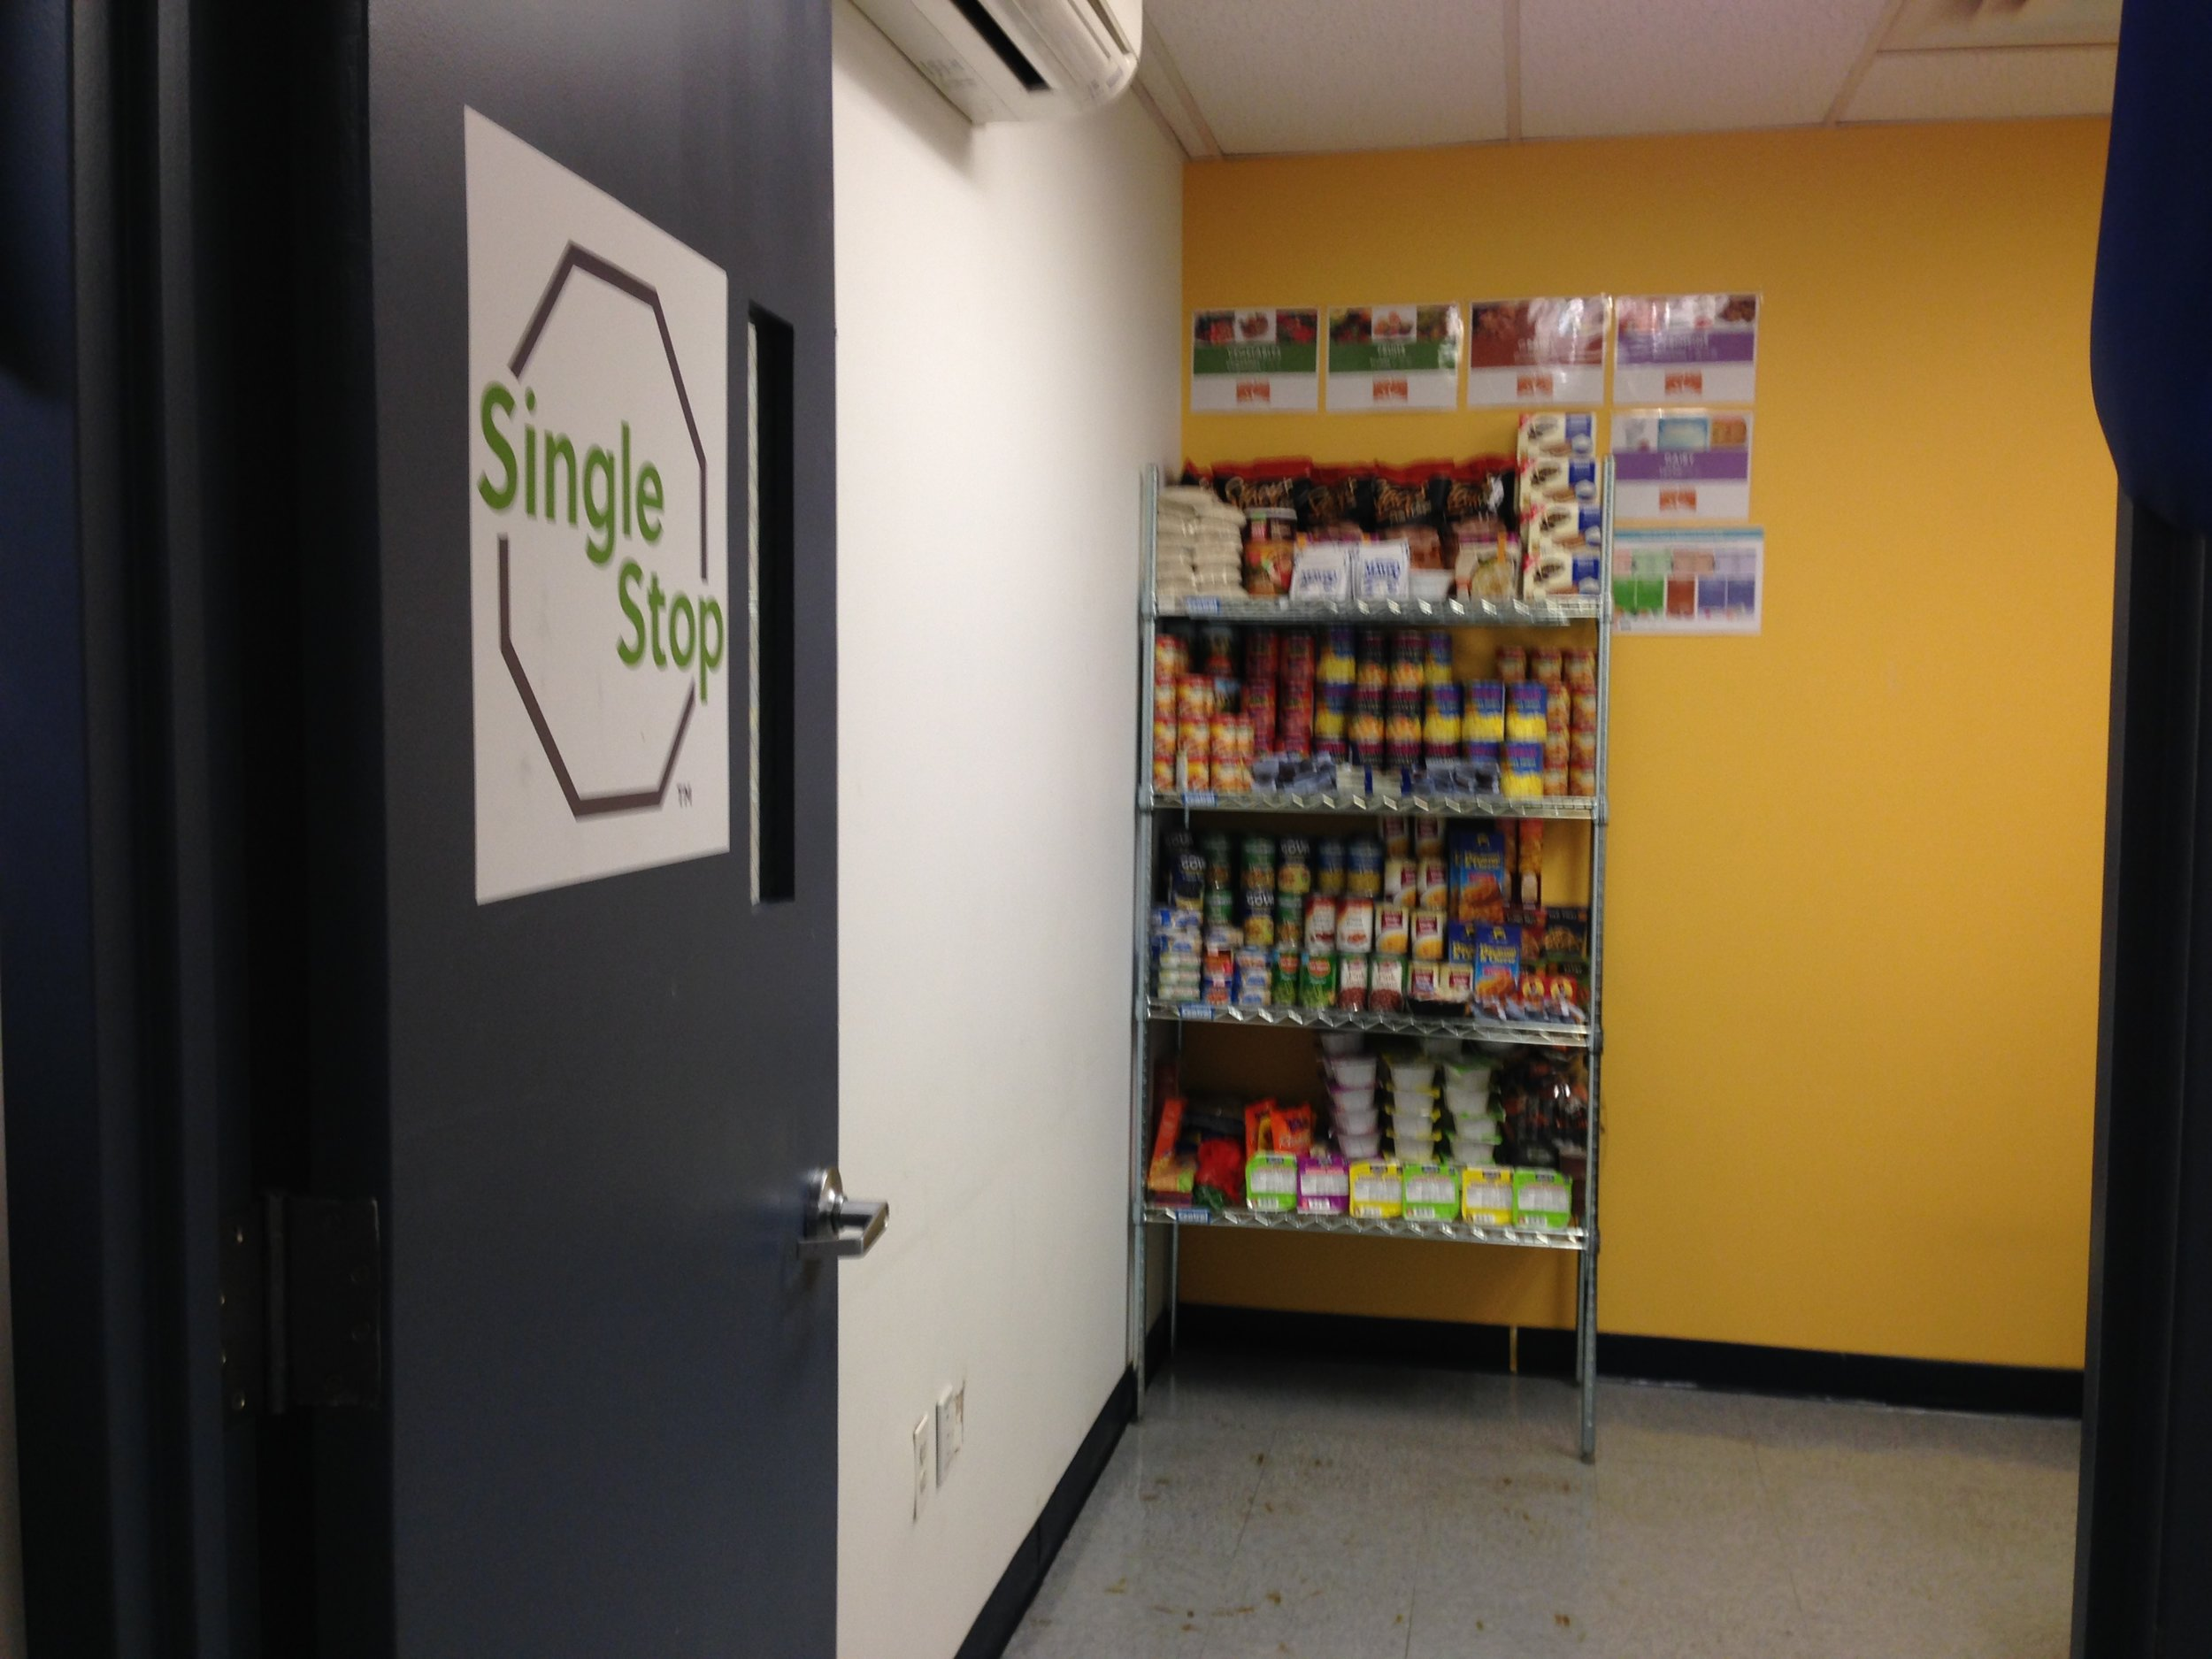 A new food pantry located at Guttman Community College